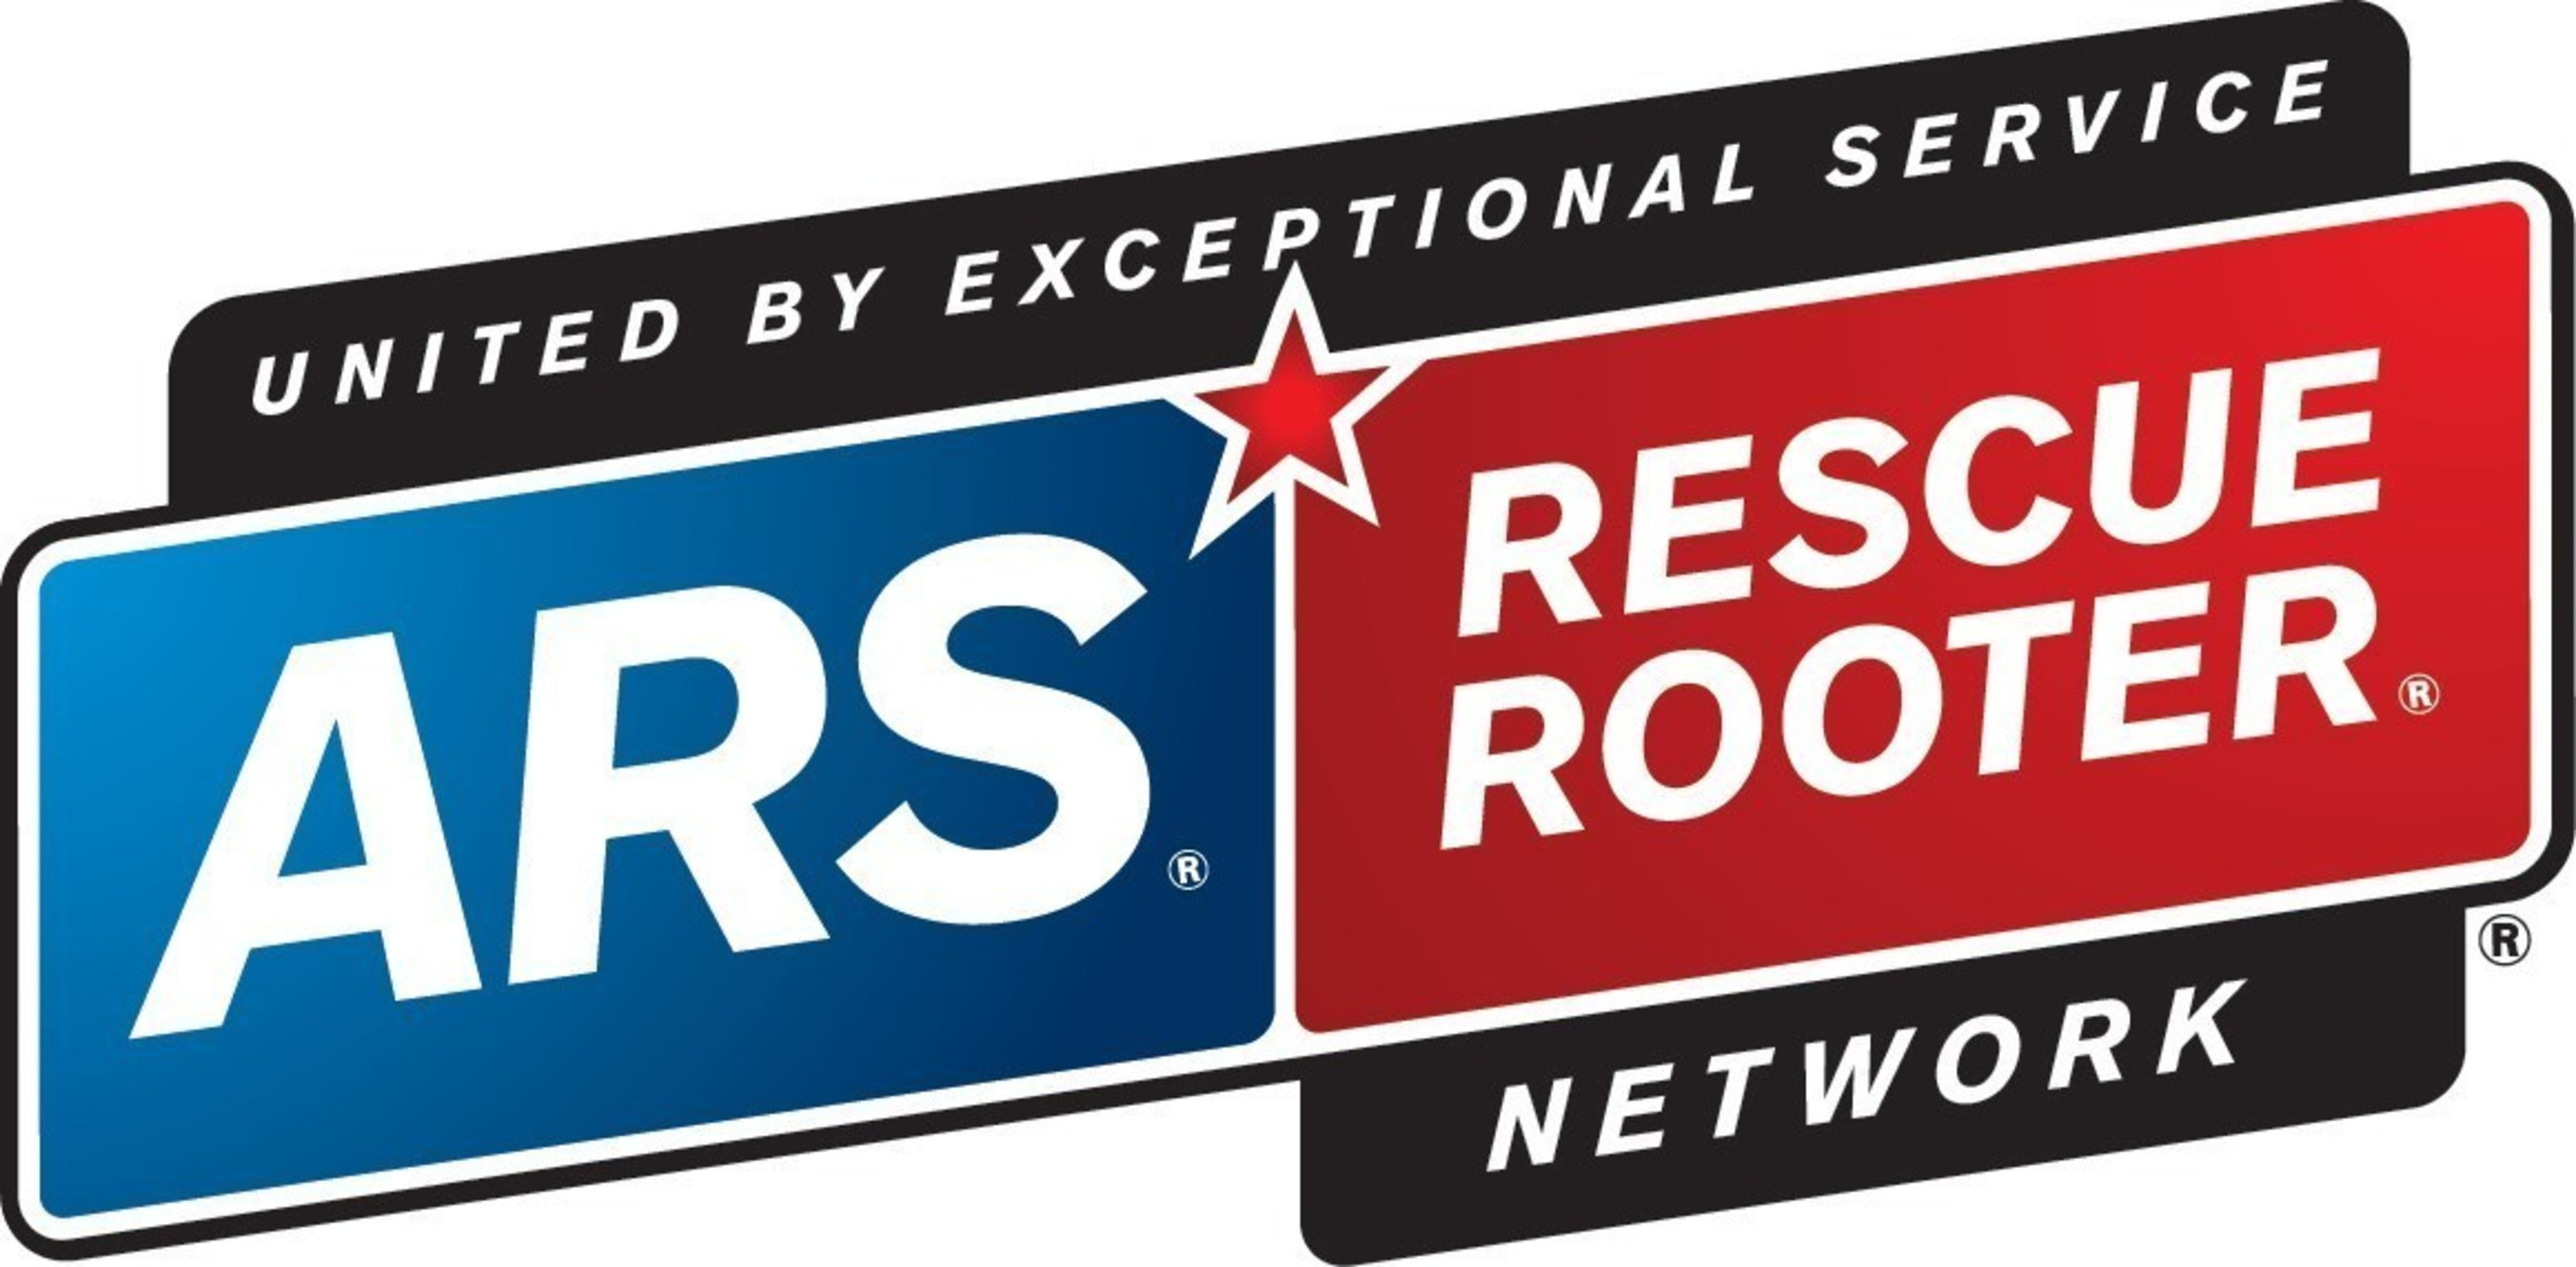 ARS operates a network of more than 65 company-owned, locally-managed service locations spanning 22 states, with approximately 5,500 employees. United by Exceptional Service(R), the ARS / Rescue Rooter Network serves both residential and light commercial customers by providing heating, cooling, indoor air quality, plumbing, drain cleaning, sewer line, radiant barrier, insulation and ventilation services. See www.ARS.com for more details.